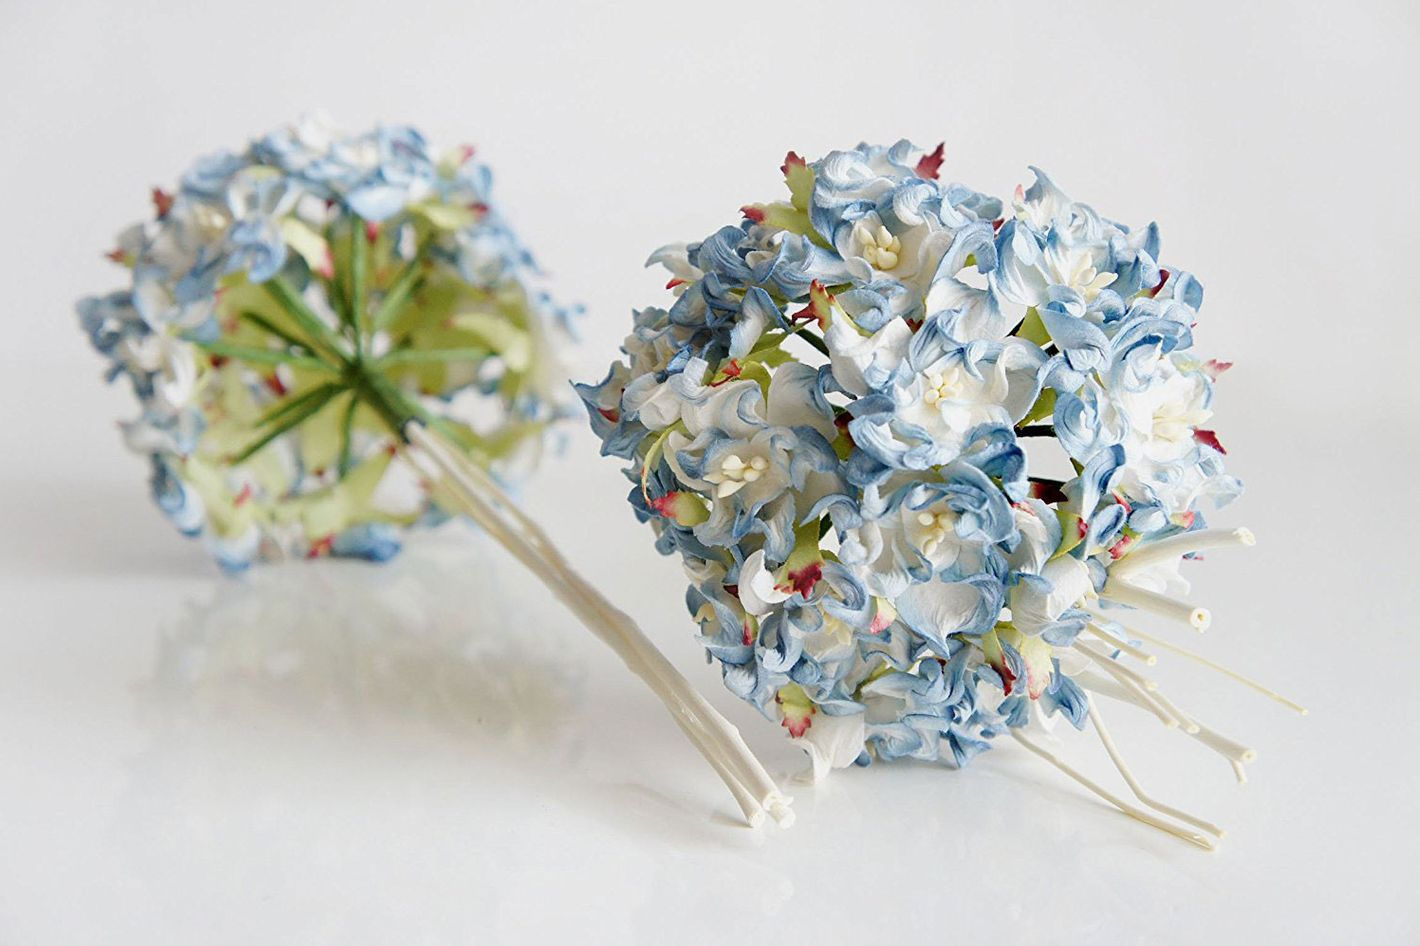 Best artificial flowers silk paper and felt bouquets plawanature paper hydrangea bundles izmirmasajfo